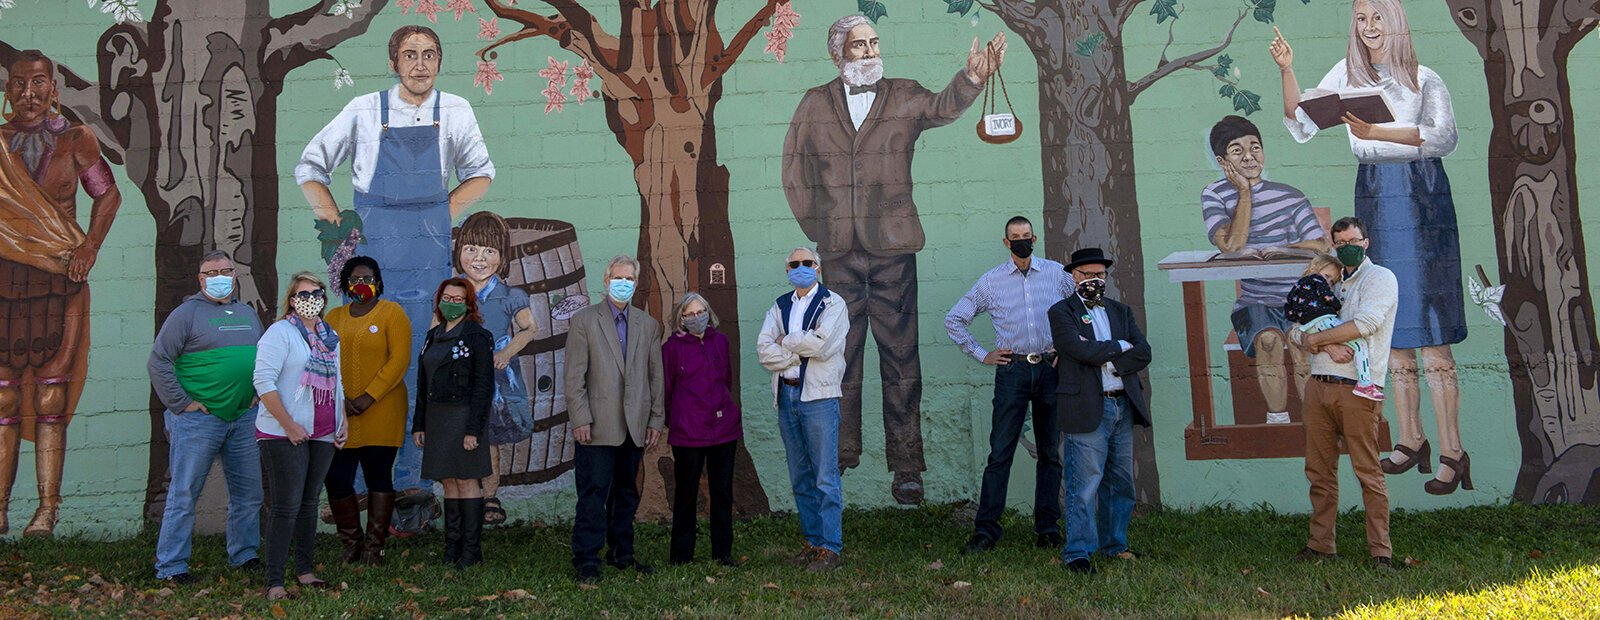 Westwood community organizers in front of the mural that started it all: John Eby, Jess Thayer, Portia Schandorf, Leslie Rich, Greg Kissel, Liz Kissel, Bill Fussinger, Dan Owens, Greg Hand, and Tom Sauter.